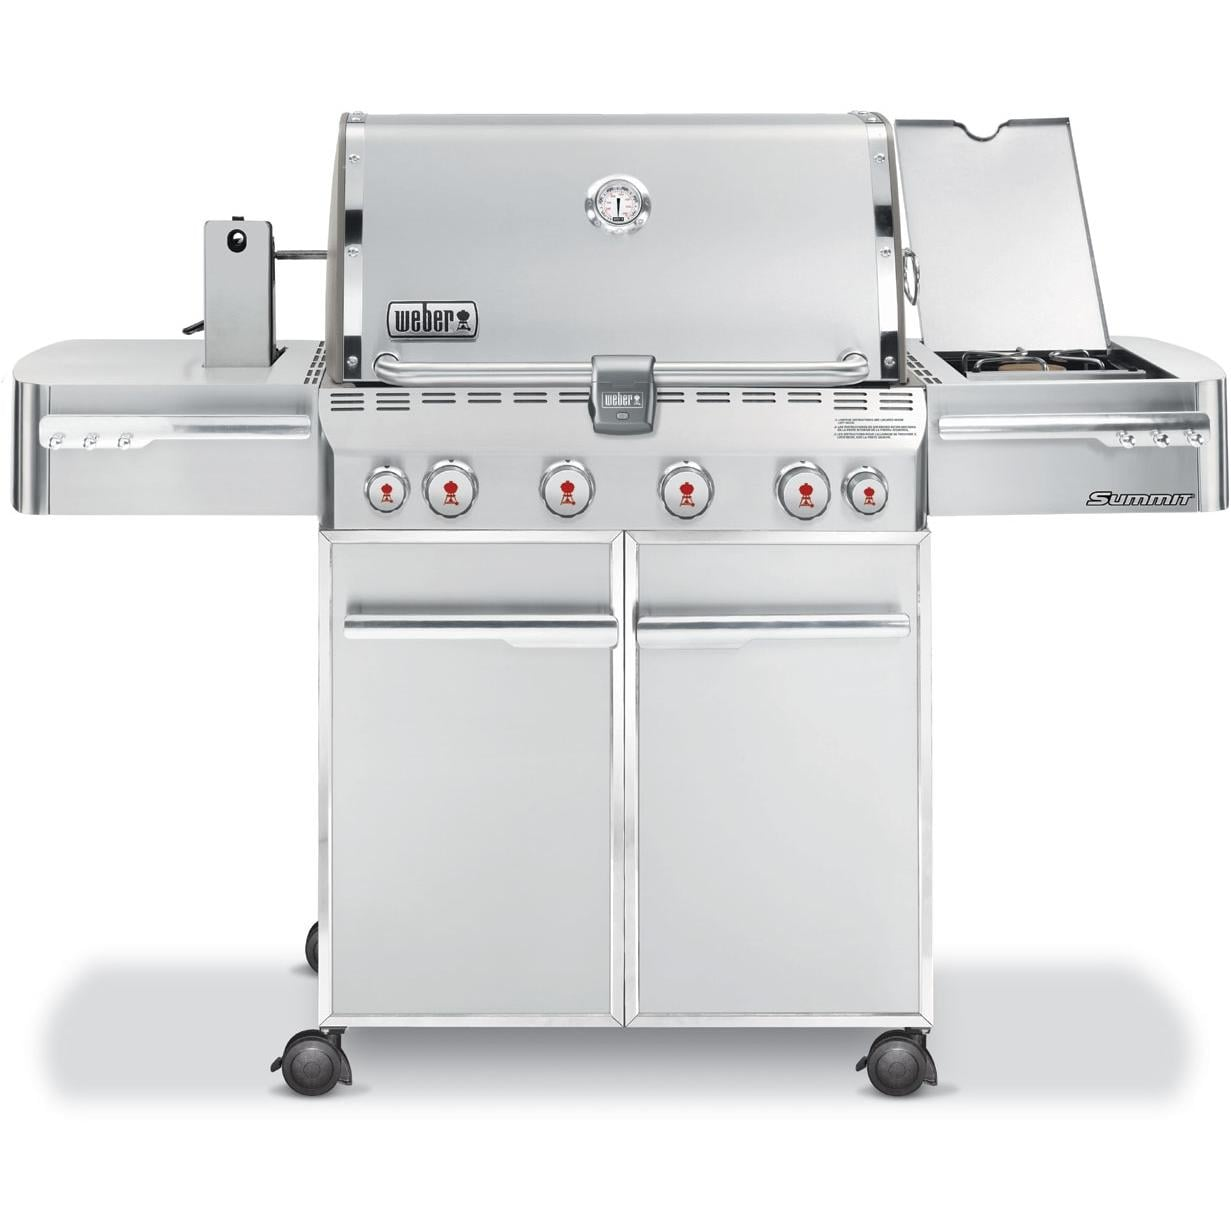 weber gas grills summit s 450 propane gas bbq grill w. Black Bedroom Furniture Sets. Home Design Ideas